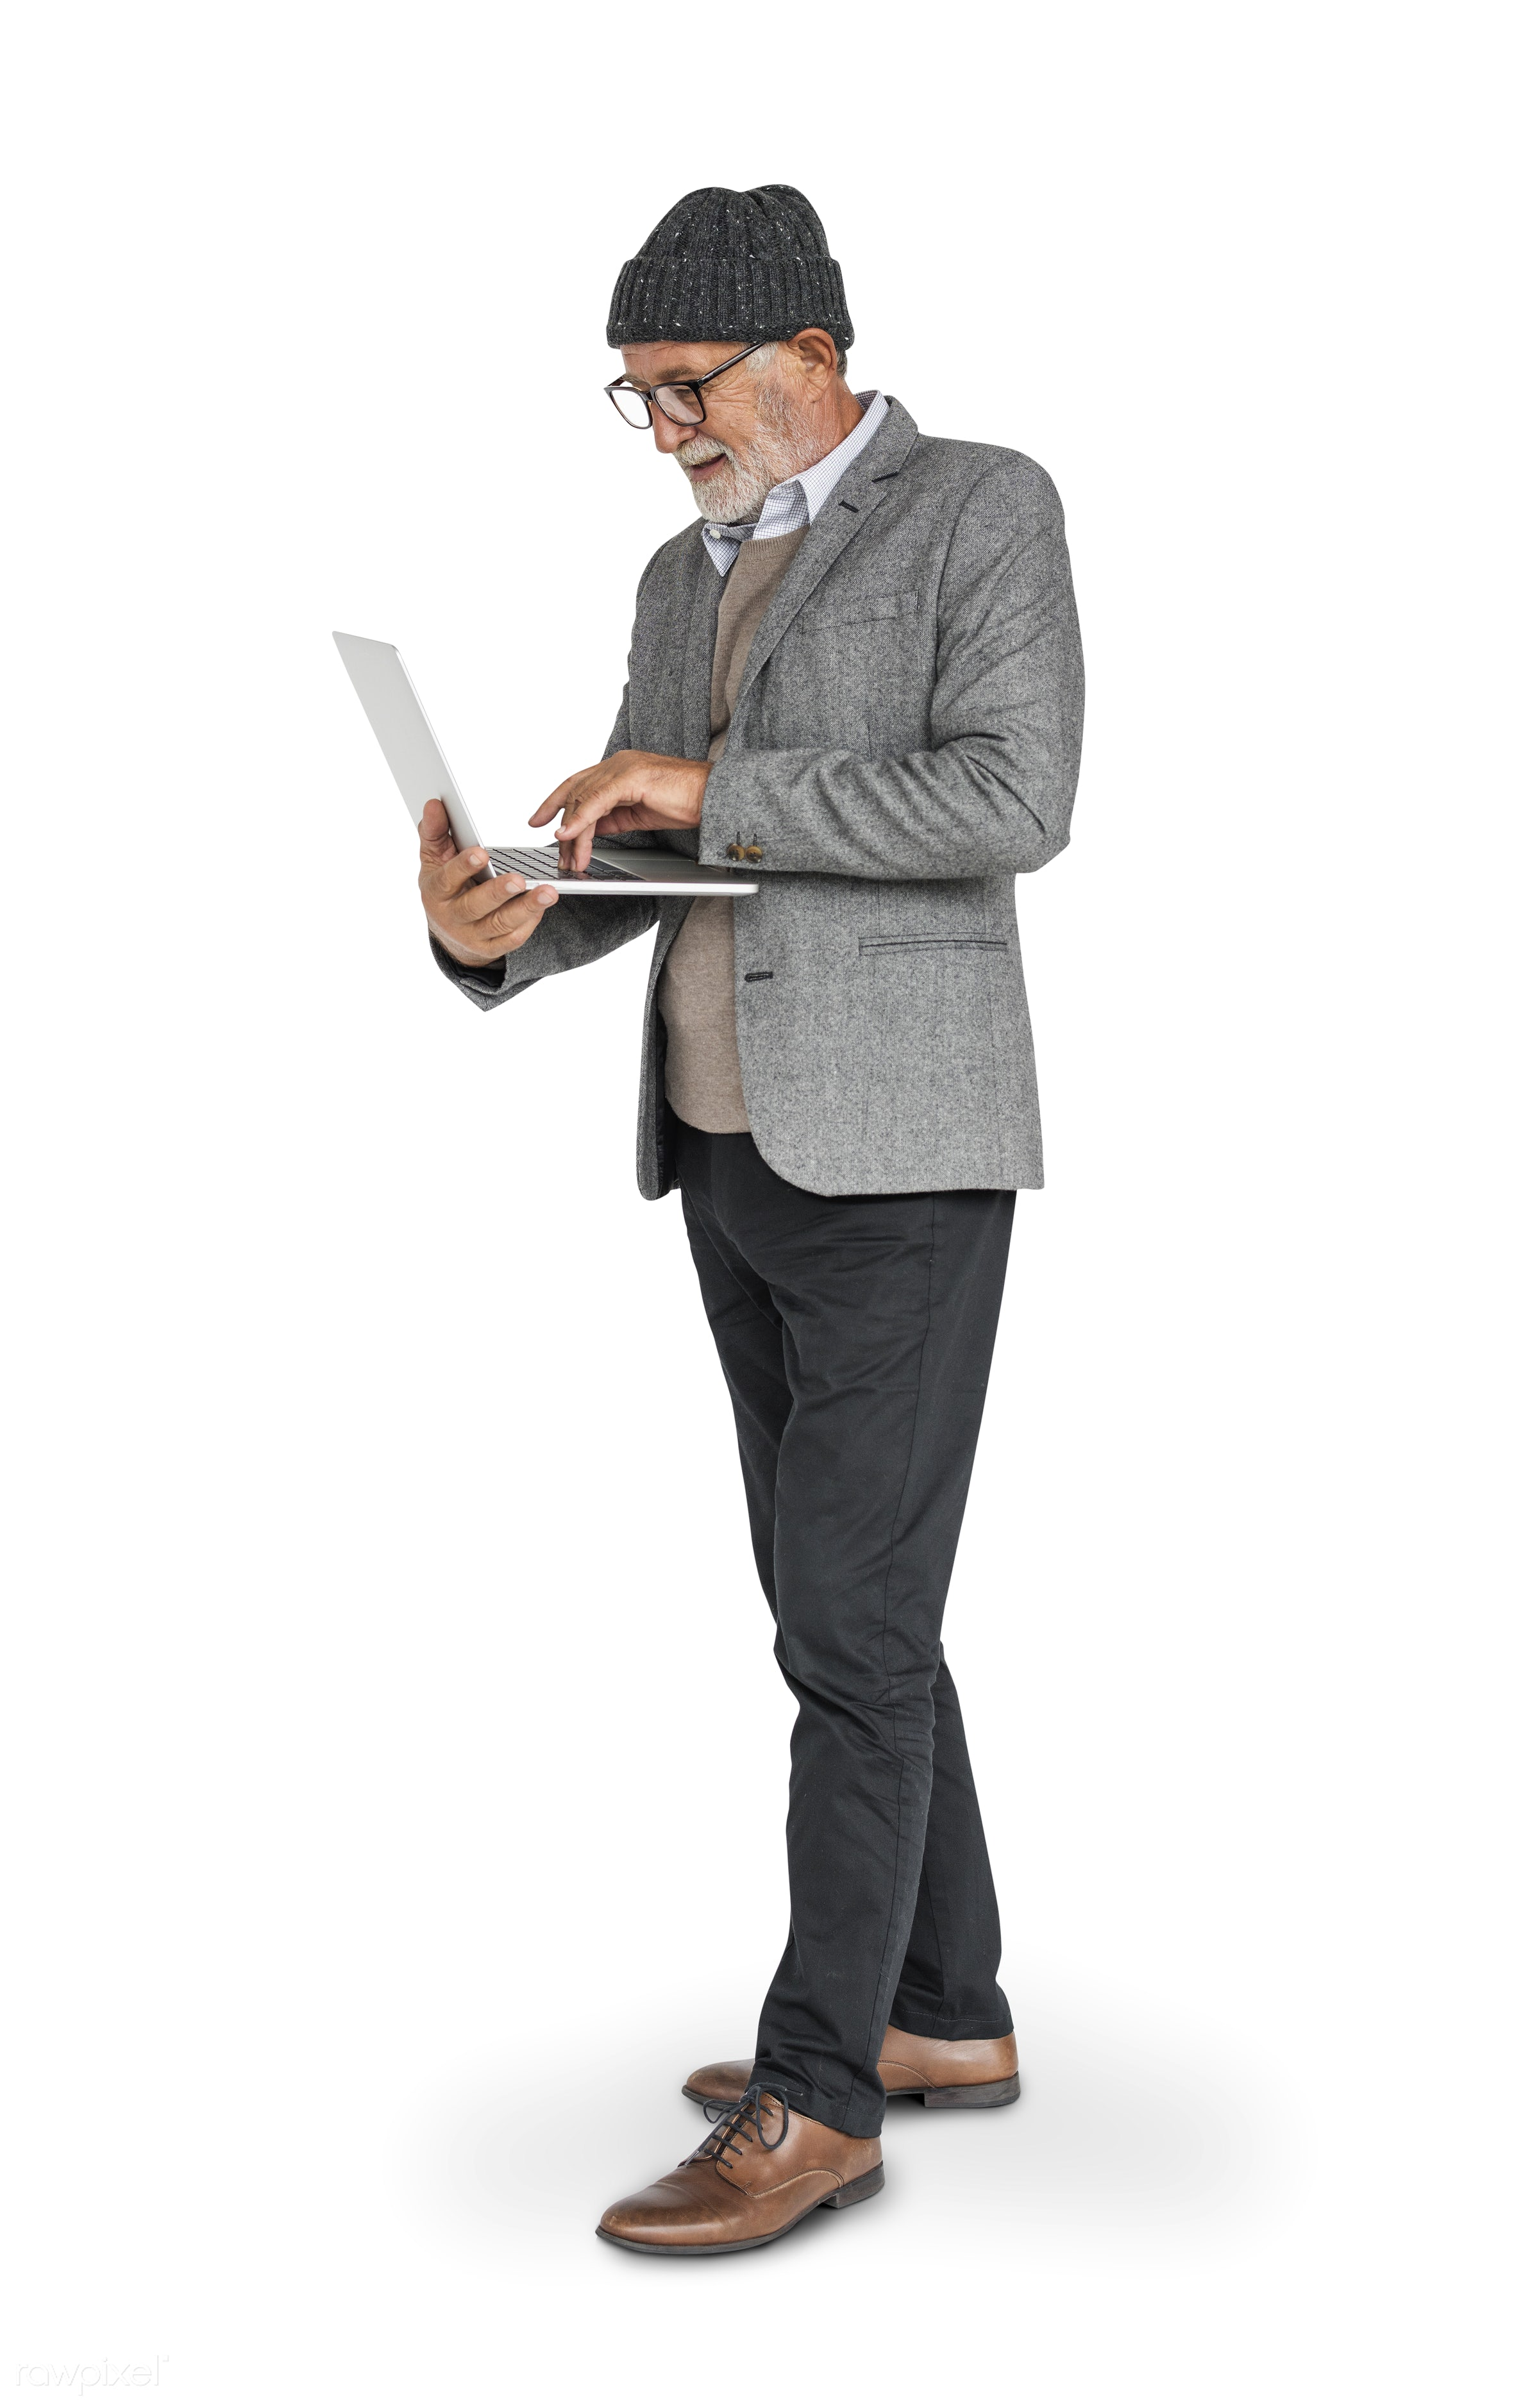 isolated on white, hat, man, senior, elderly, laptop, hold, holding, typing, type, glasses, standing, stand